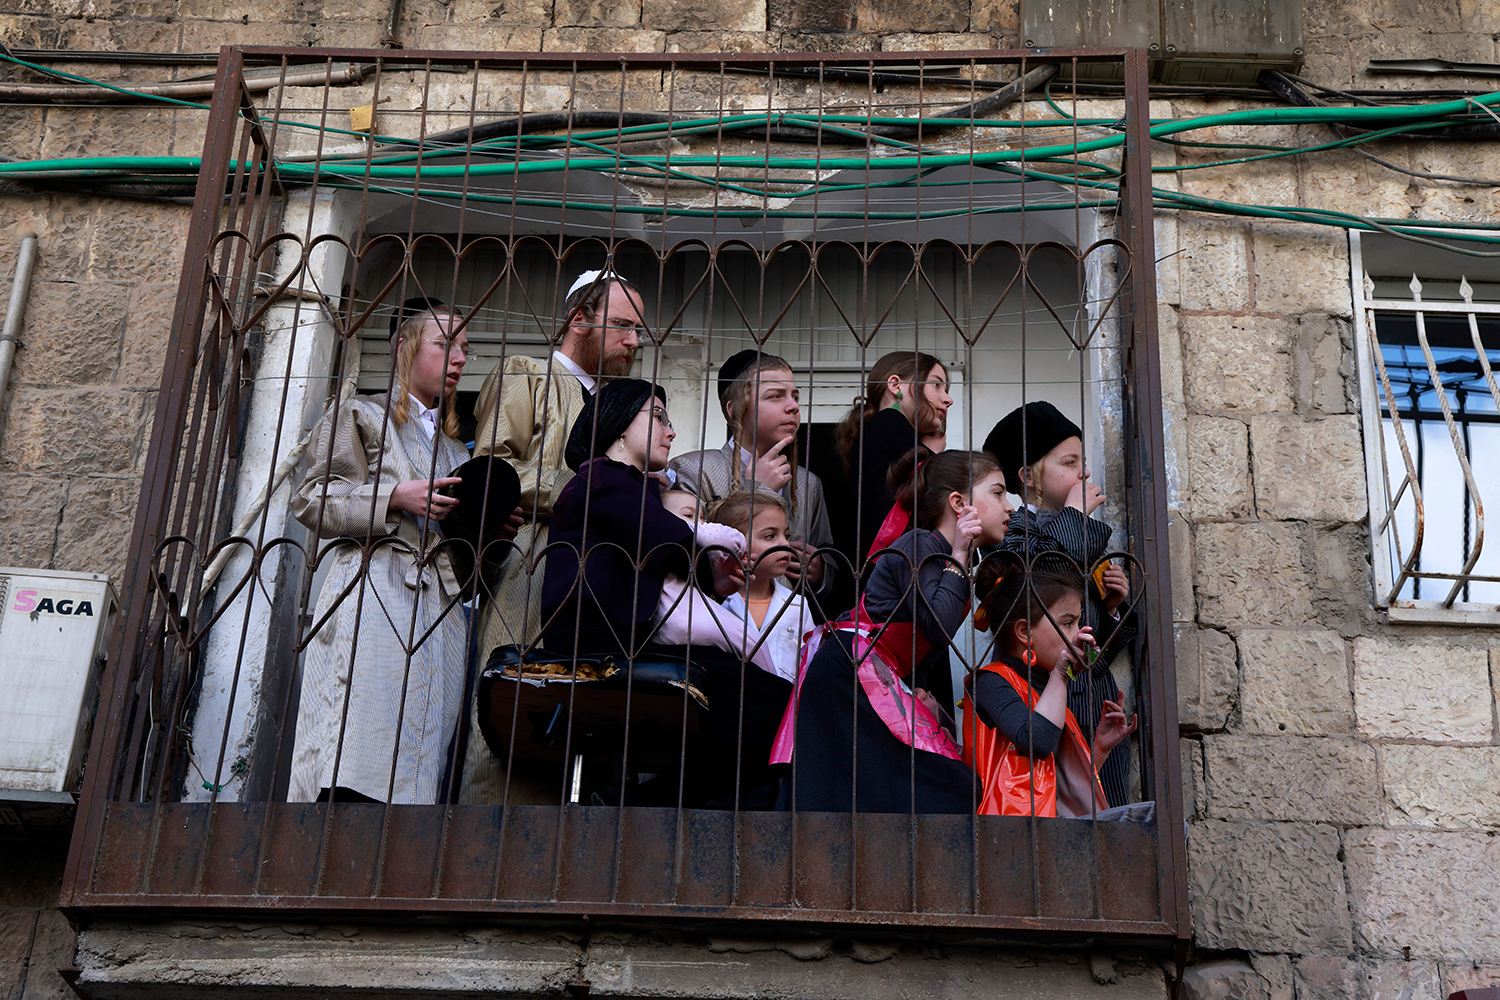 Orthodox Jews watch from their balcony in Jerusalem as people scuffle with Israeli police during Purim celebrations Feb. 28. MENAHEM KAHANA/AFP via Getty Images